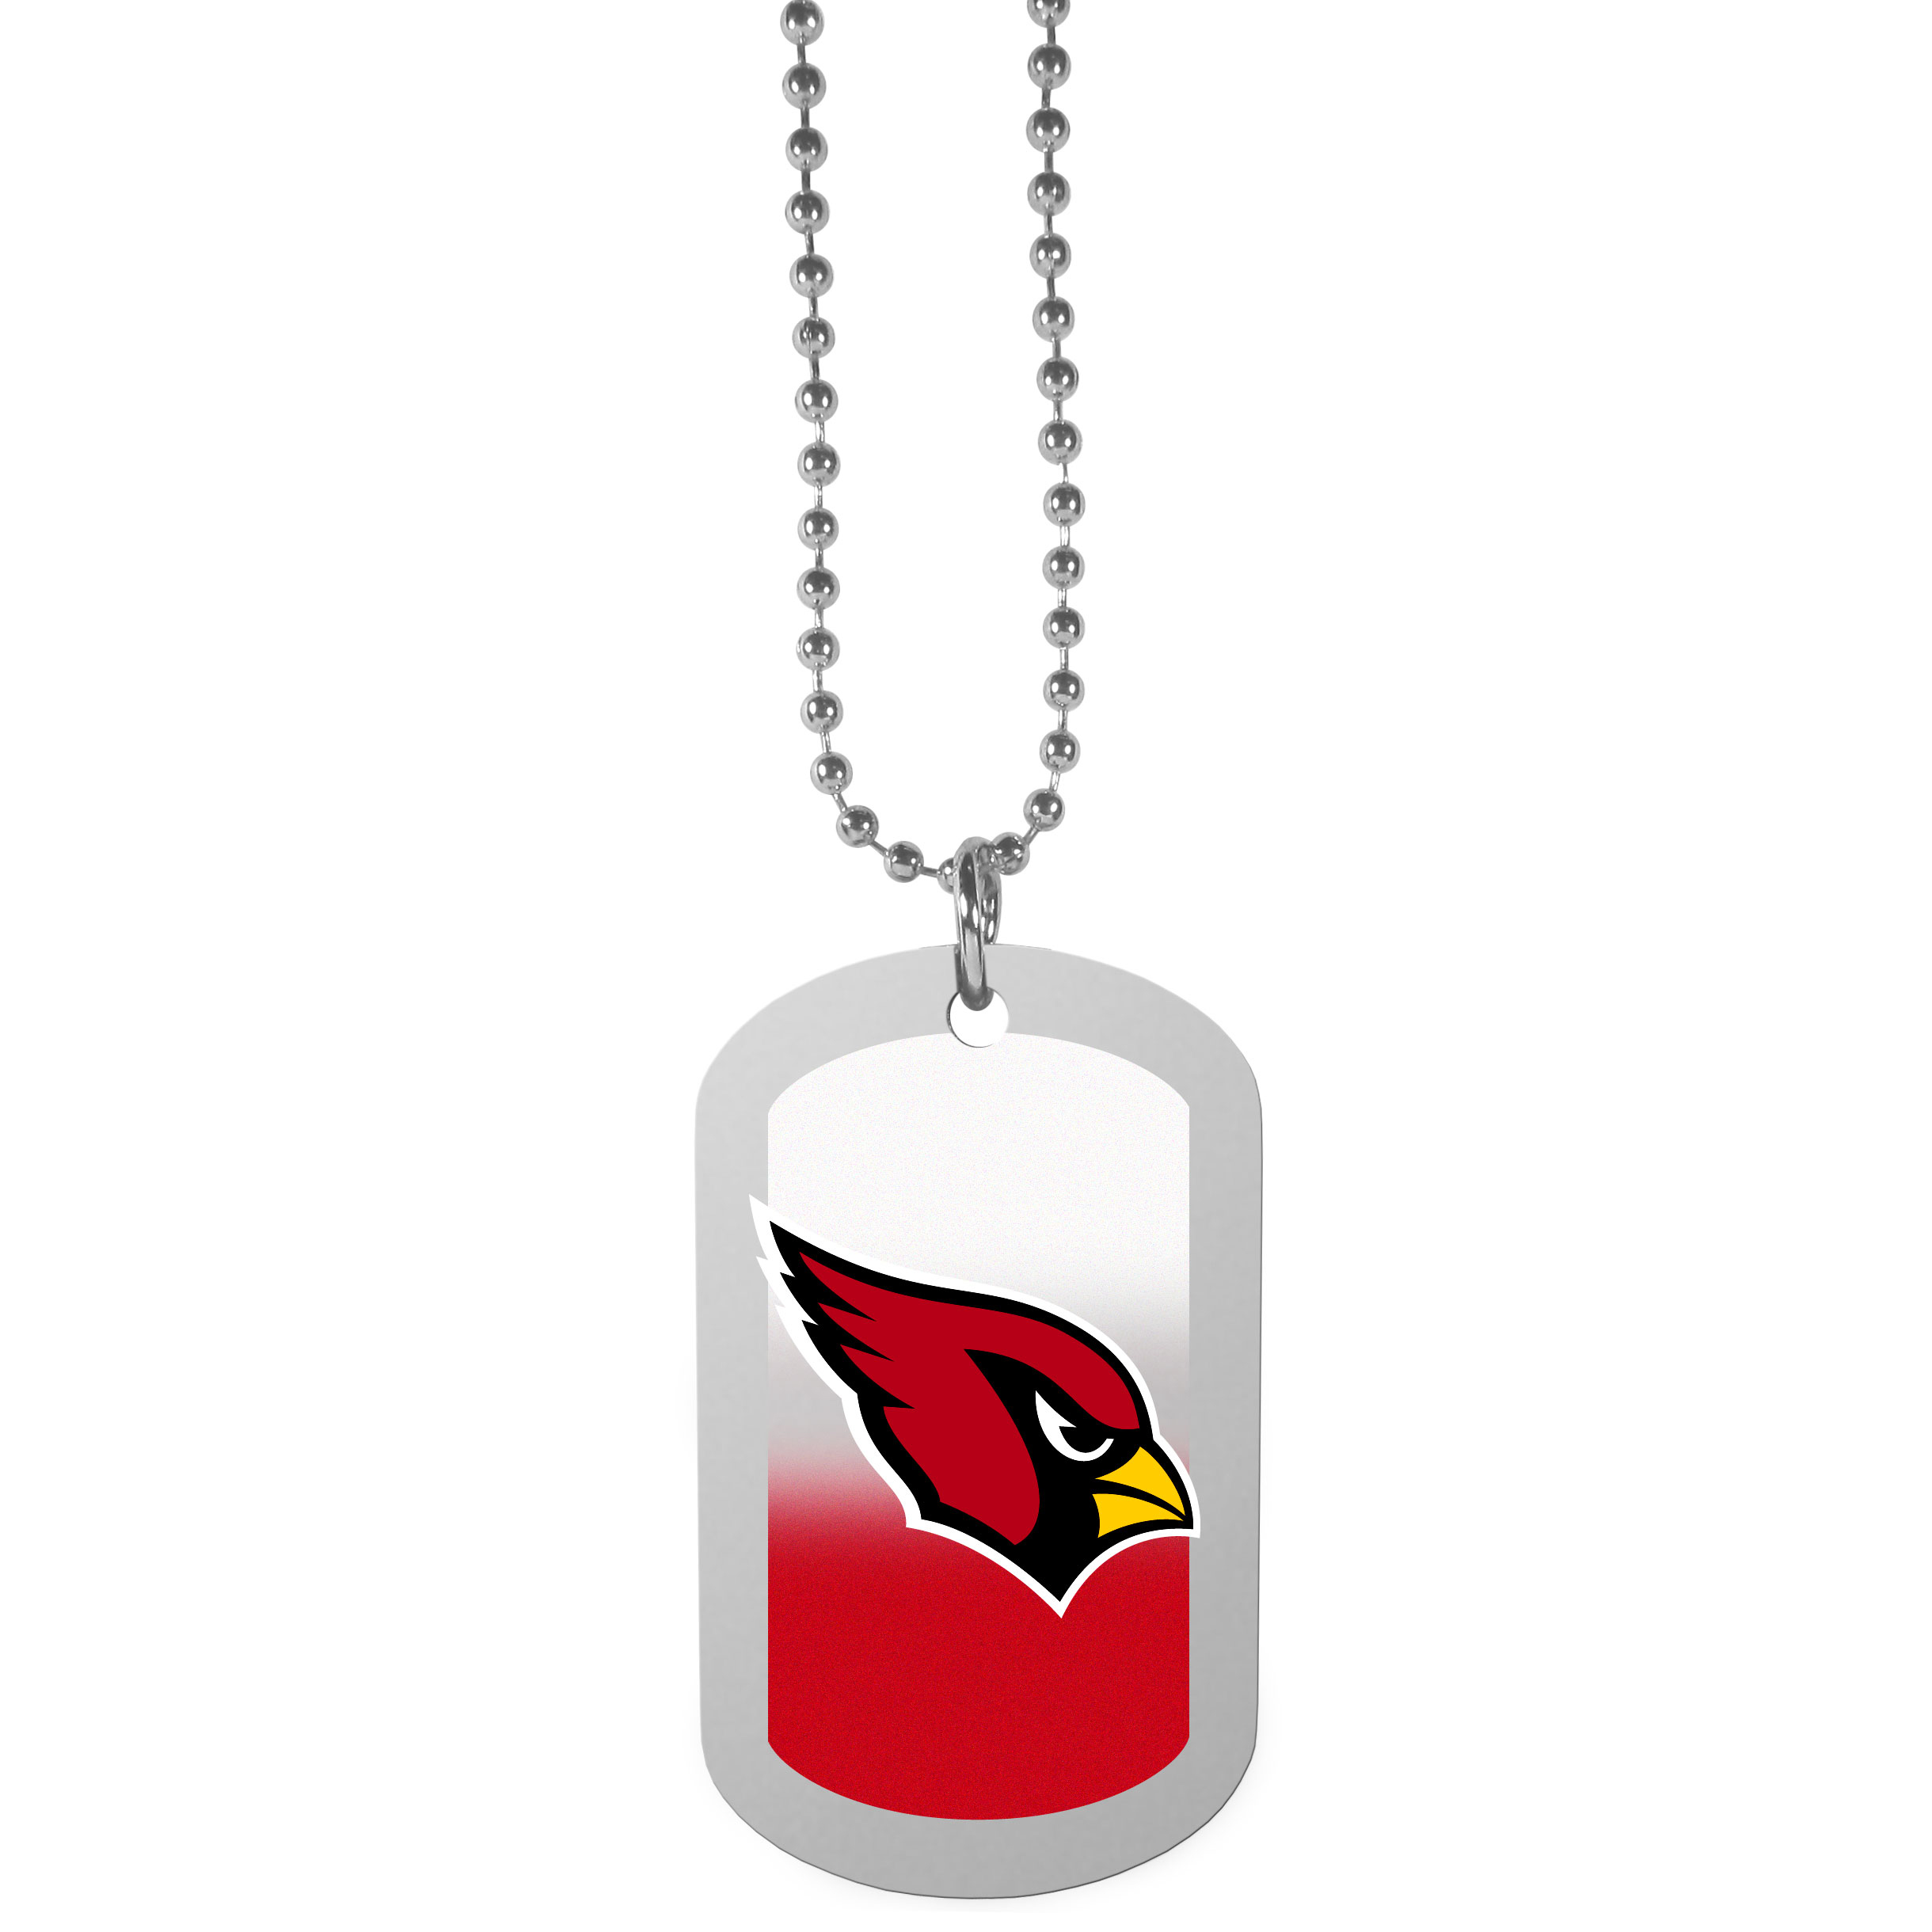 Arizona Cardinals Team Tag Necklace - Dog tag necklaces are a fashion statement that is here to stay. The sporty version of the classic tag features a gradient print in team colors featuring a full color team logo over a high polish tag to create a bold and sporty look. The tag comes on a 26 inch ball chain with a ball and joint clasp. Any Arizona Cardinals would be proud to wear this attractive fashion accessory.